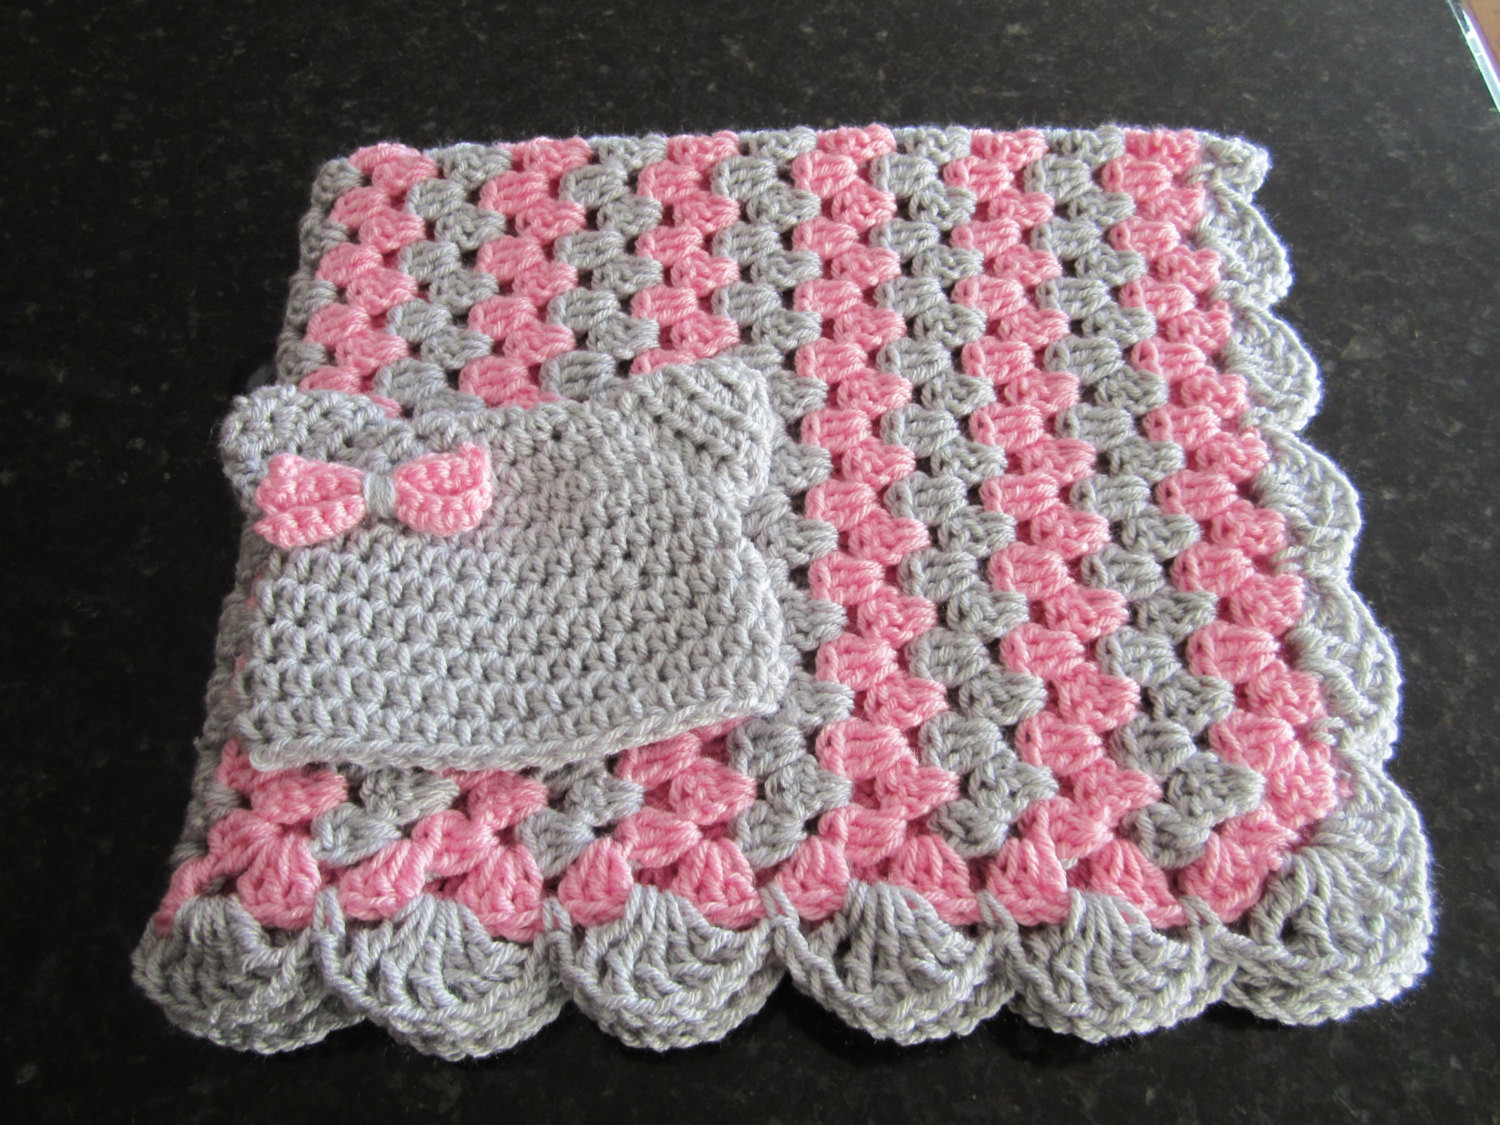 Baby Girl Crochet Blanket Patterns Best Of Baby Girl Blanket Crochet Patterns Of Unique 41 Photos Baby Girl Crochet Blanket Patterns